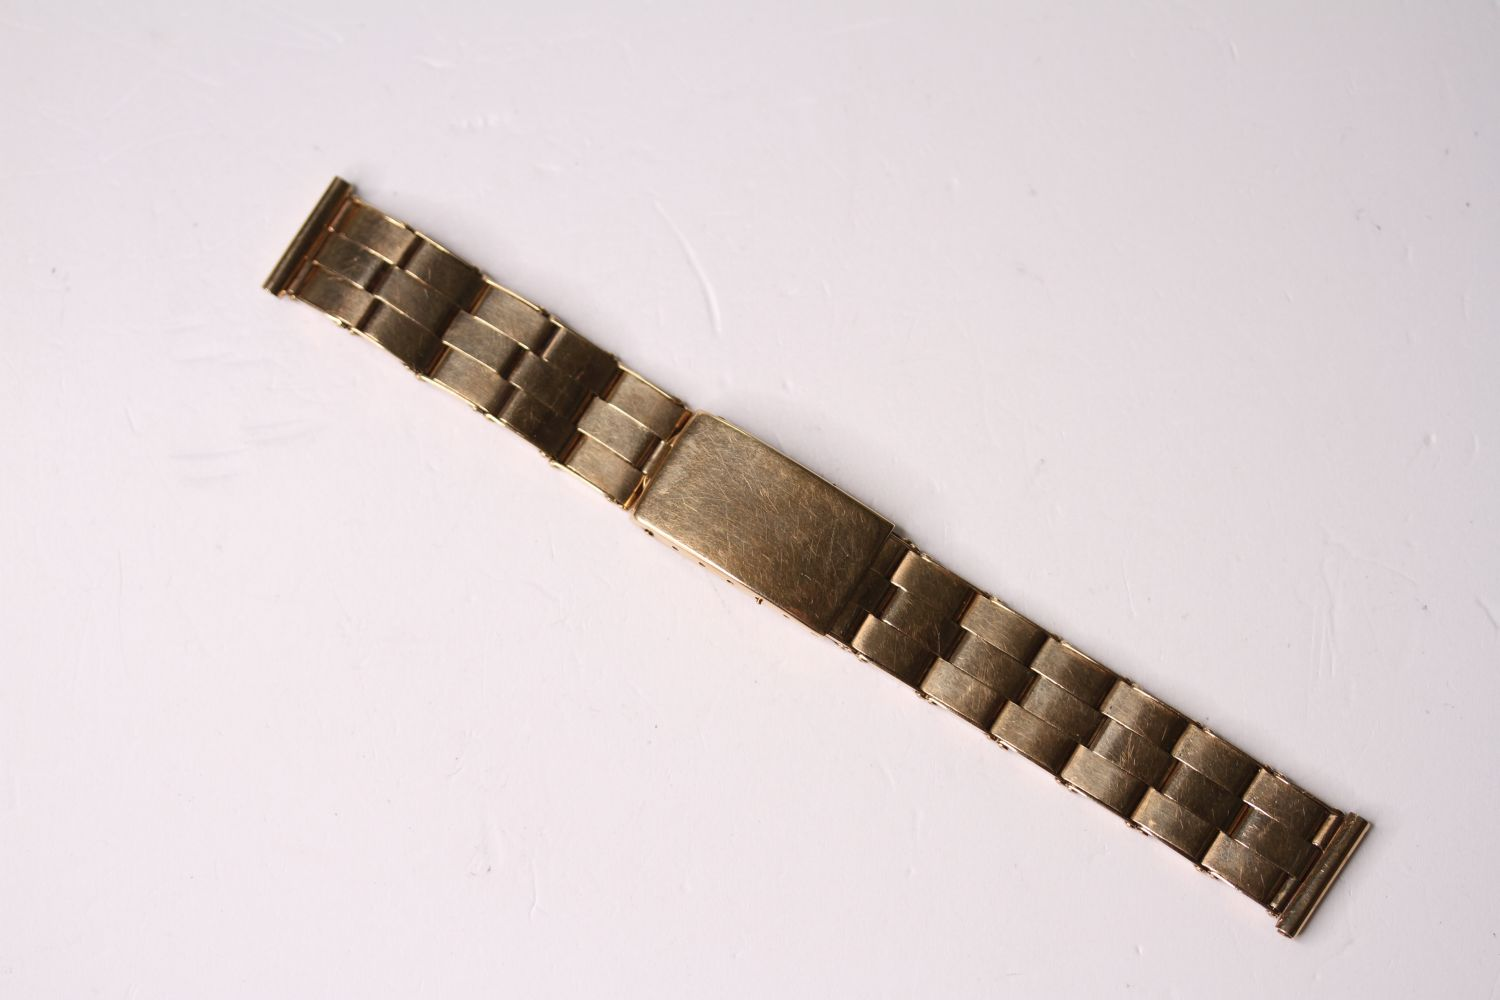 14CT VINTAGE EXPANDABLE BRACELET, stamped 14ct yellow gold, mecan 1956, approximately 35.1g.